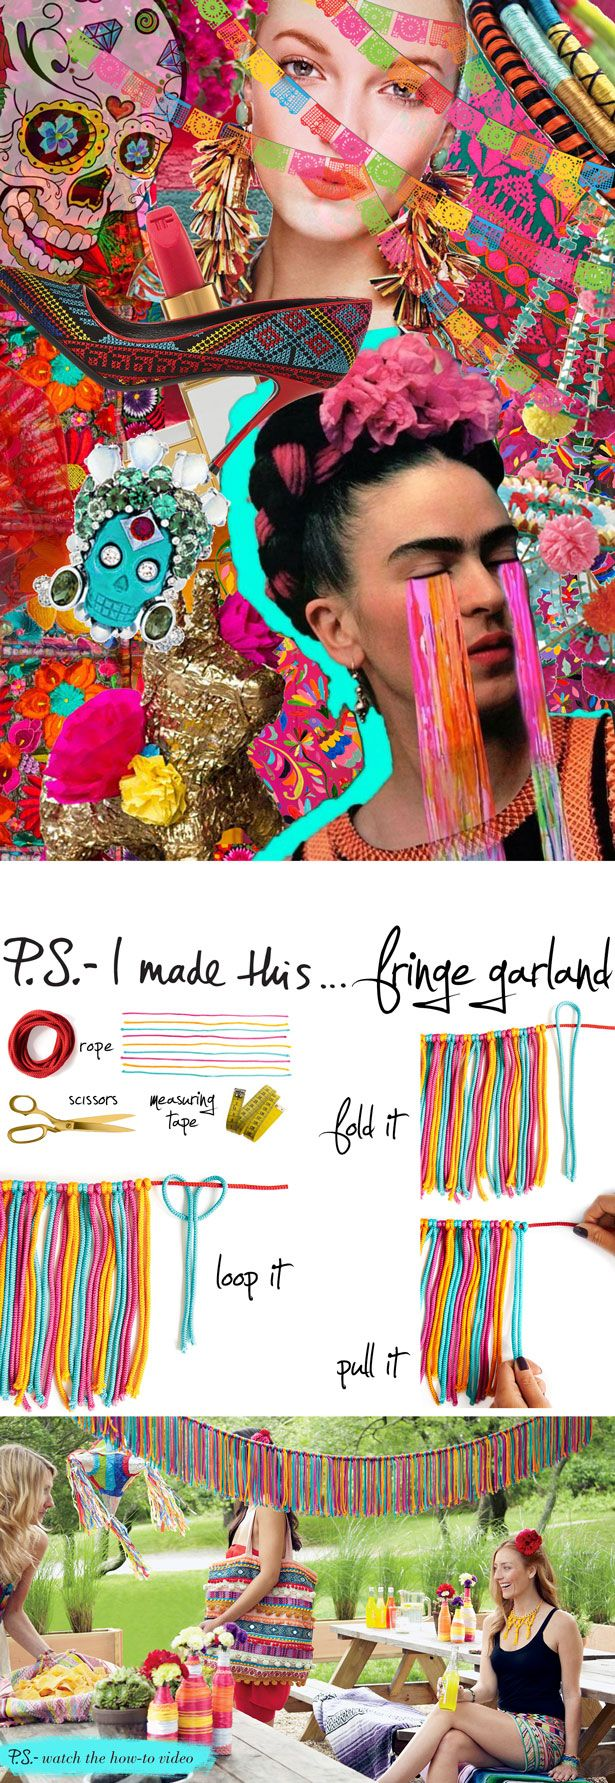 Fringe Garland - P.S. - I Made This... Can one ever have too much fringe in their life? I think NOT. :)